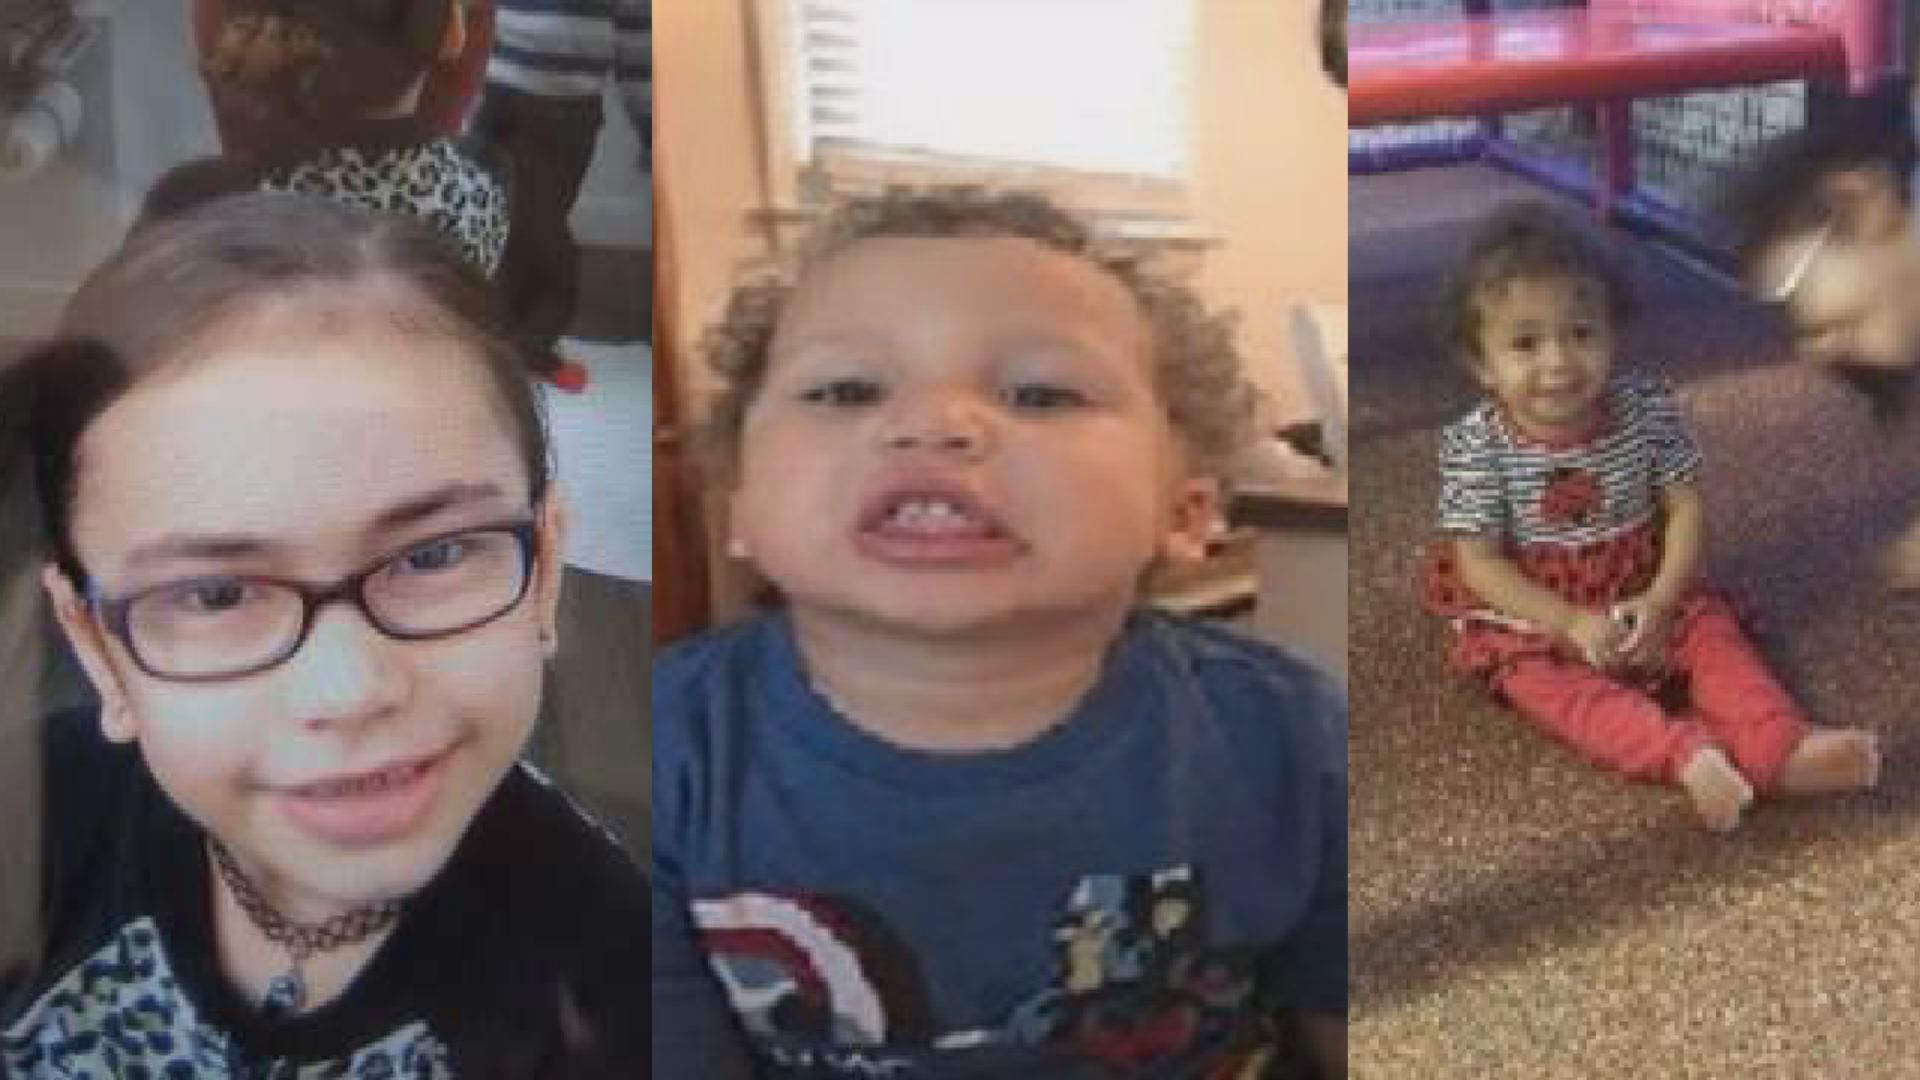 Amber Alert: 3 missing children missing from Waterbury last seen in